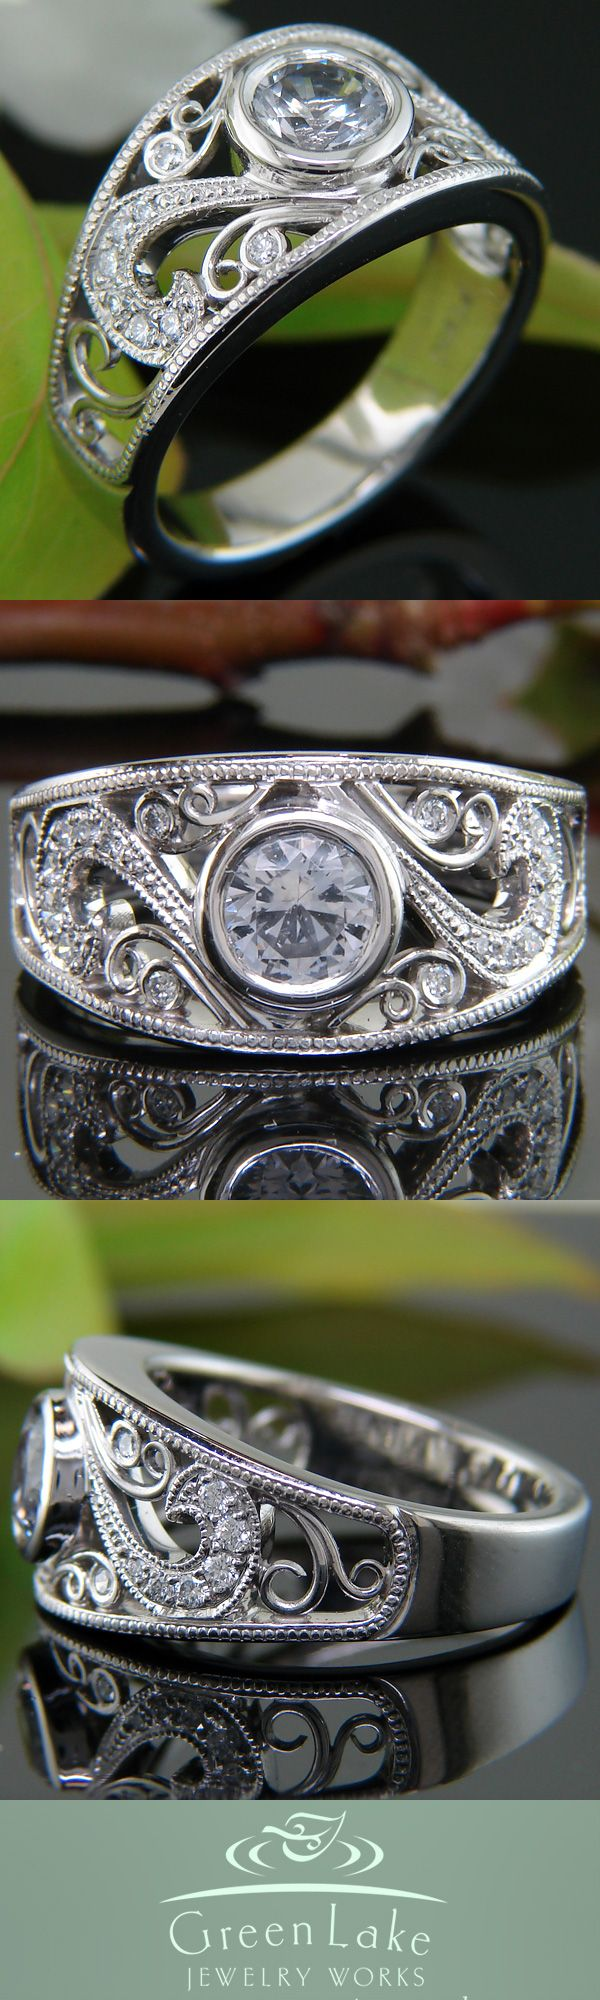 antique style ring from green lake jewelry works cool